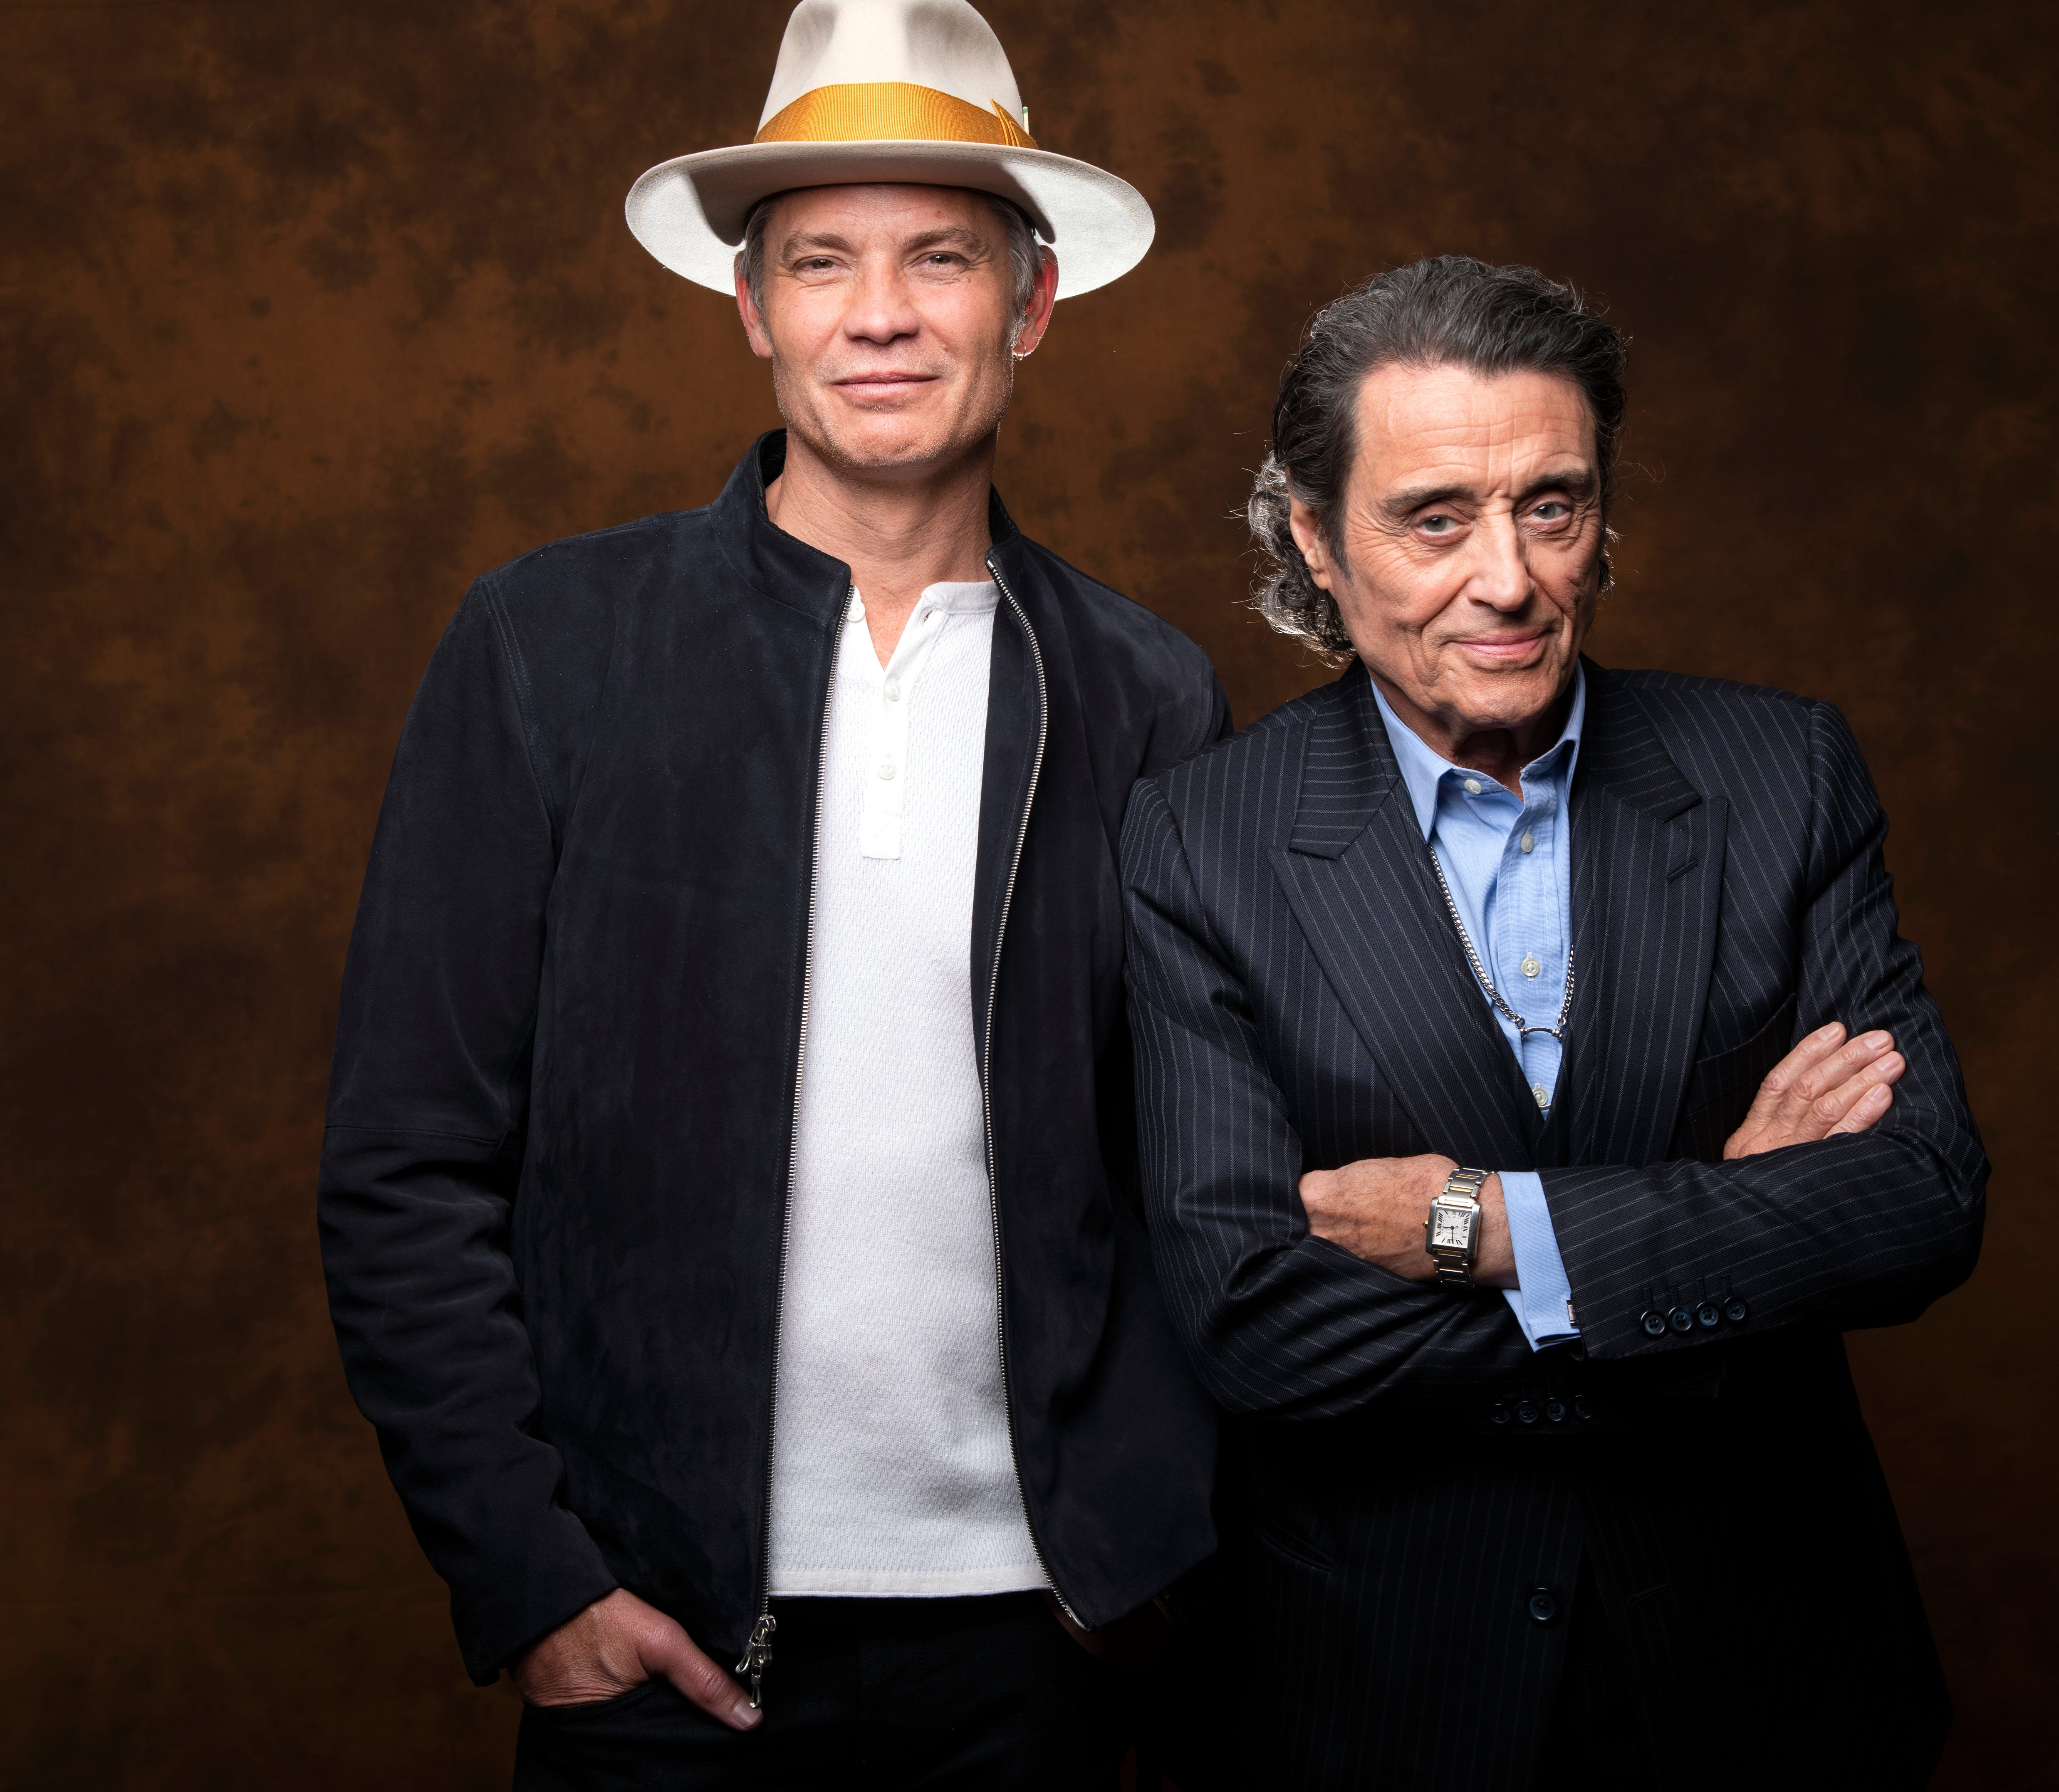 3/21/19 2:57:14 PM -- Los Angeles, CA, U.S.A.: Portrait of Tim Olyphant and Ian McShane who are reprising their roles of Seth Bullock and Al Swearengen from the HBO series